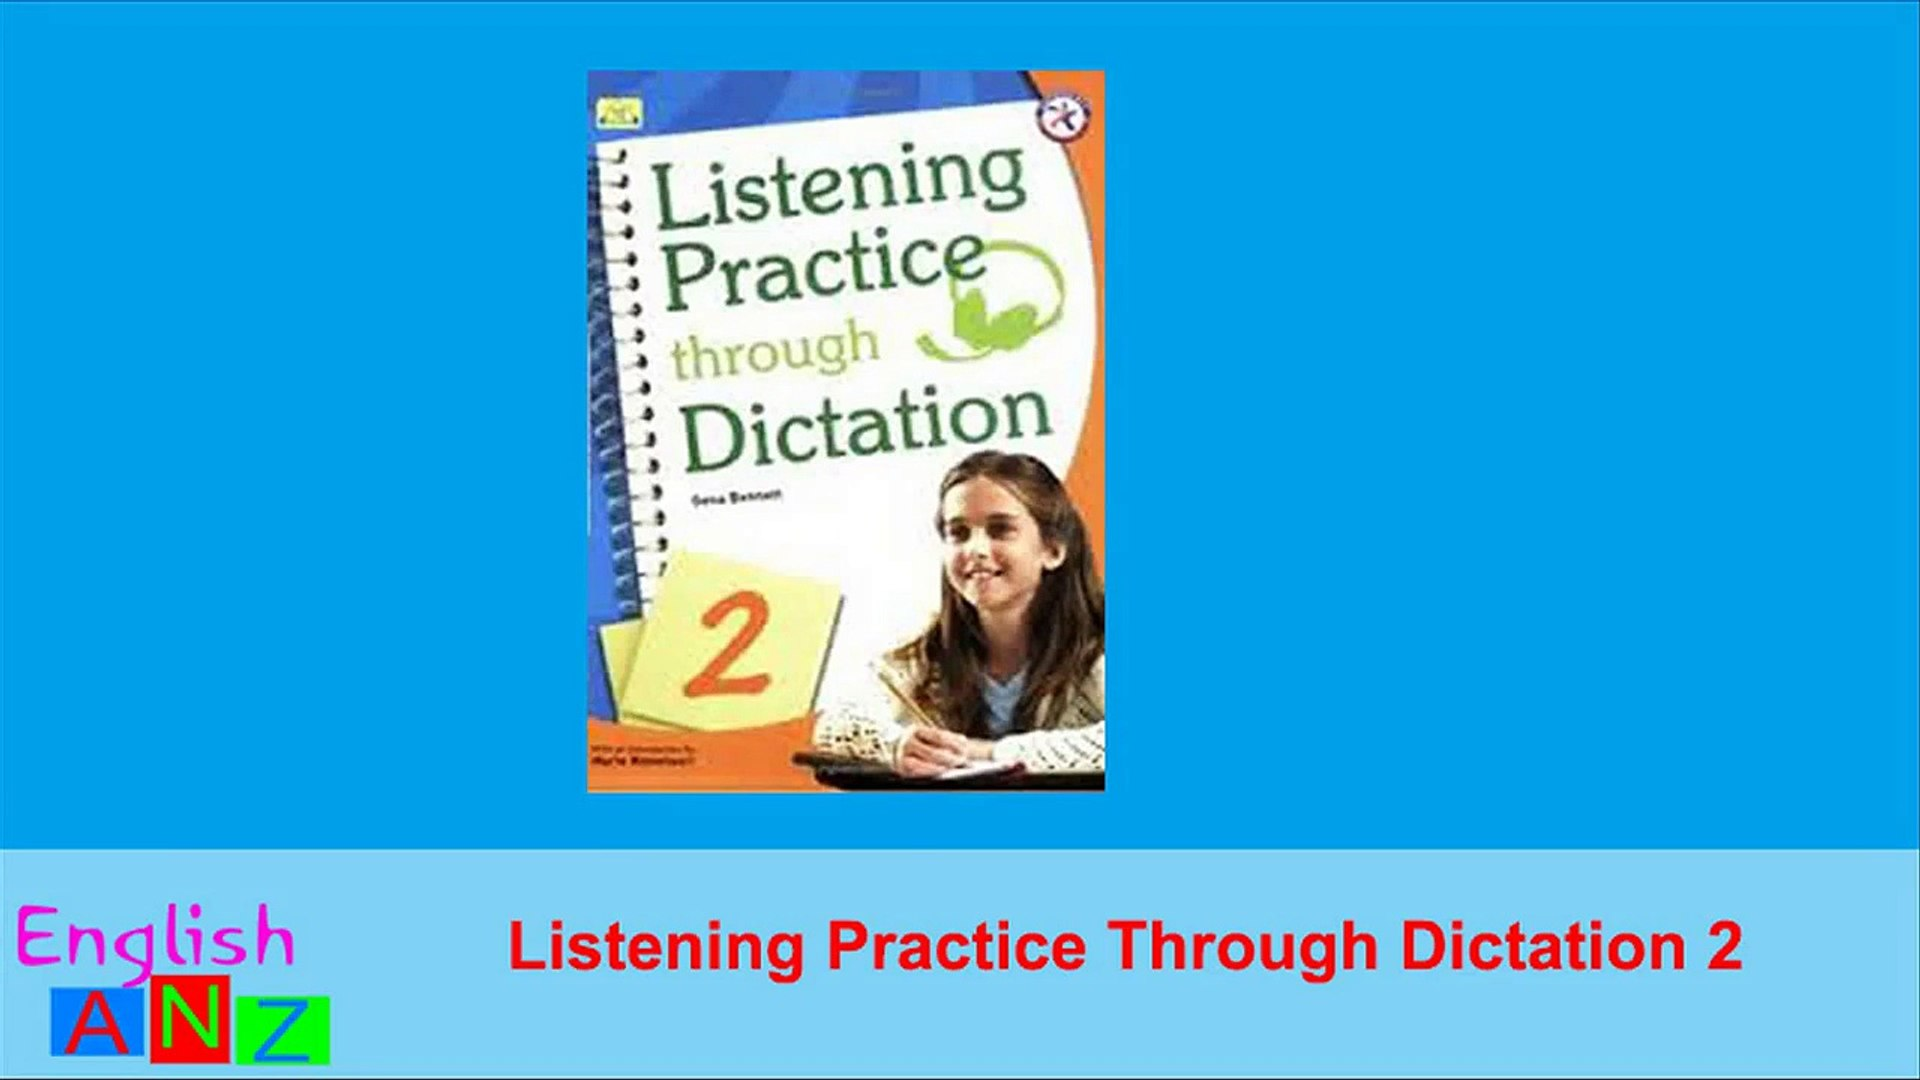 Unit 34 - A Healthy Lifestyle - Listening Practice Through Dictation 2